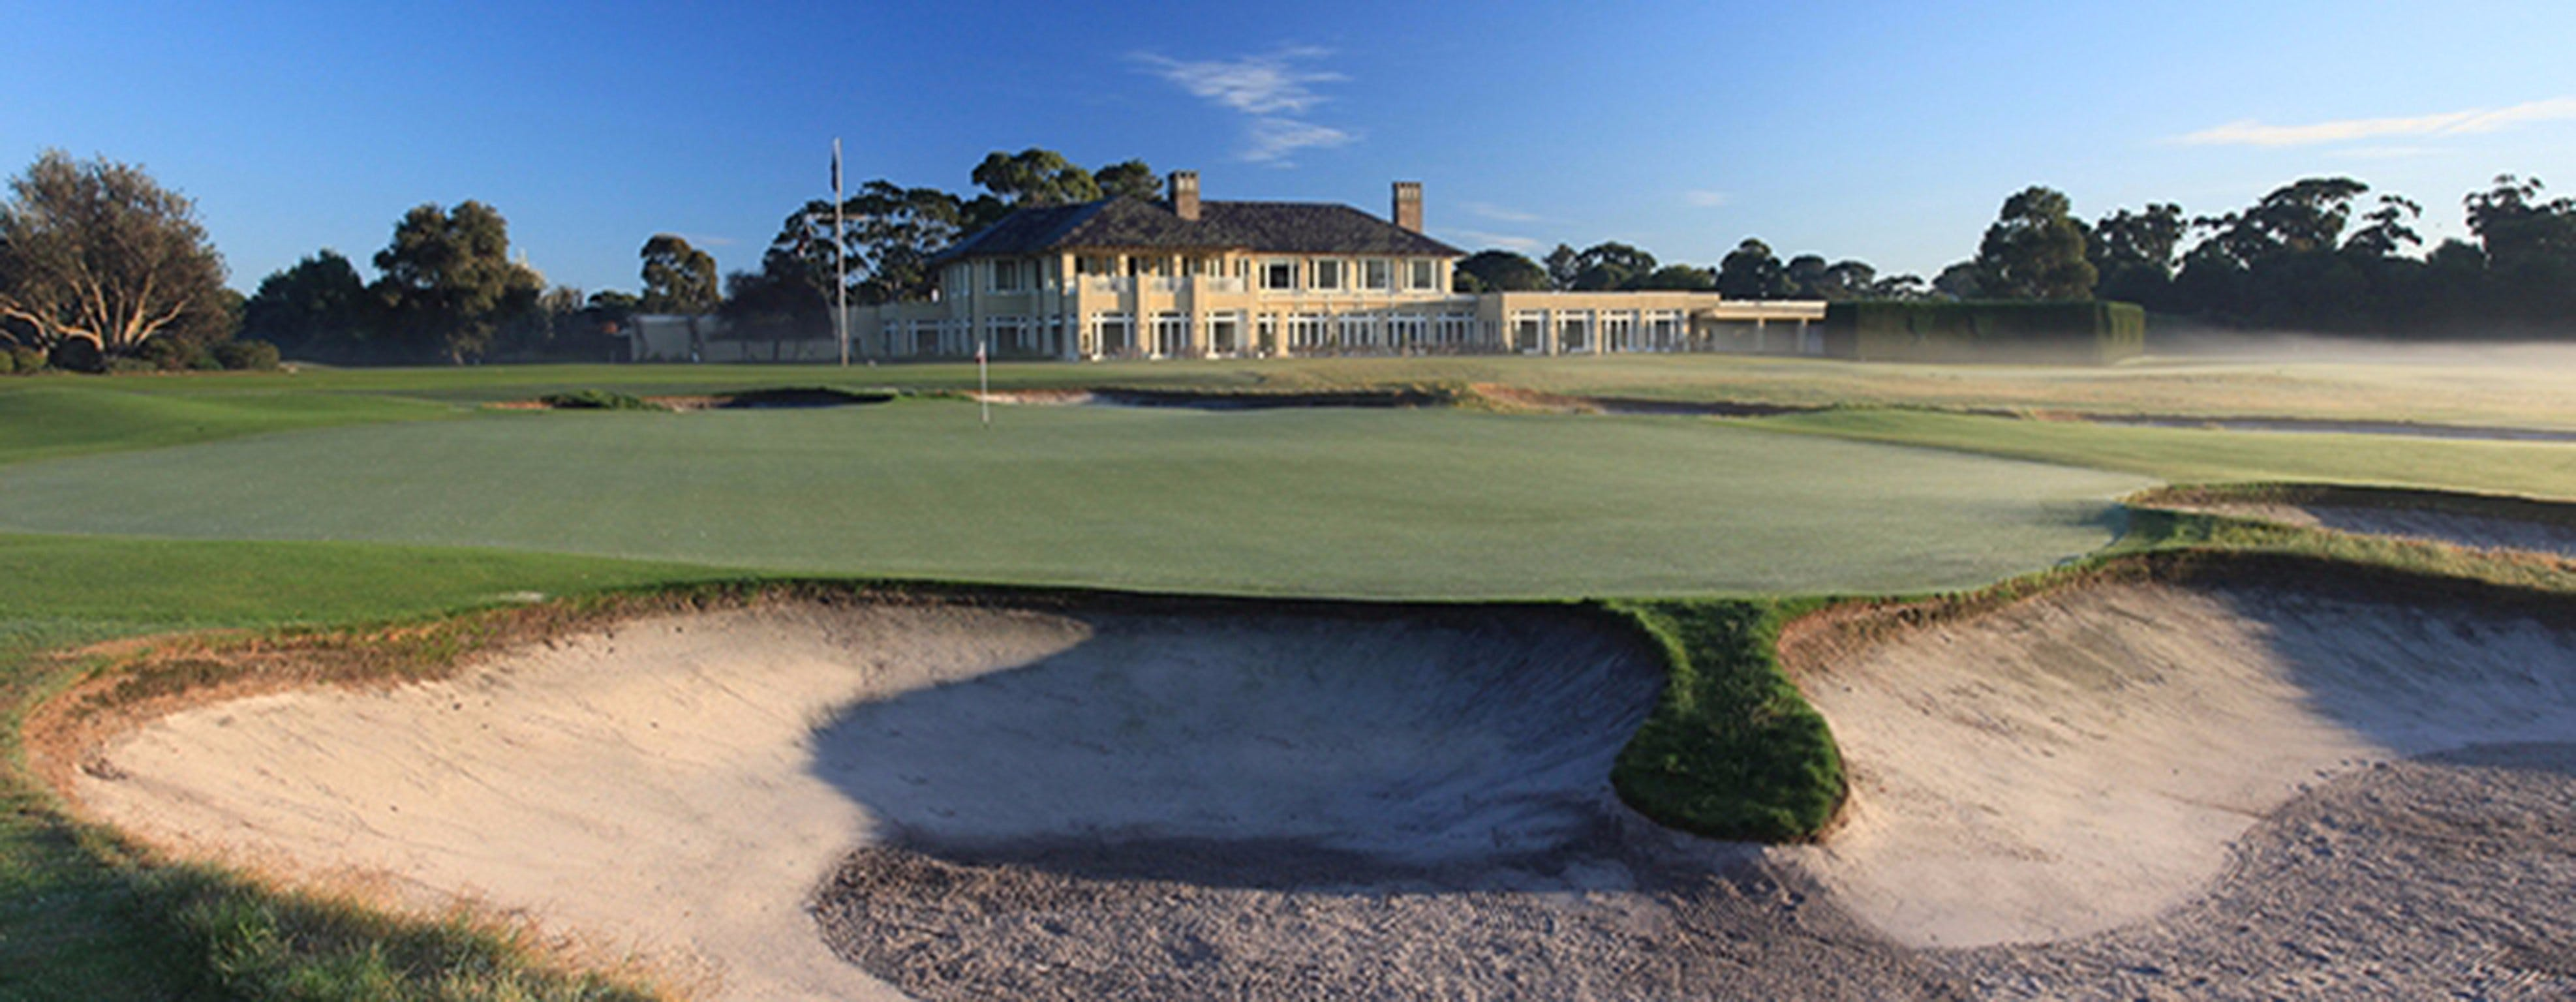 The Royal Melbourne Golf Club - ACT Tourism